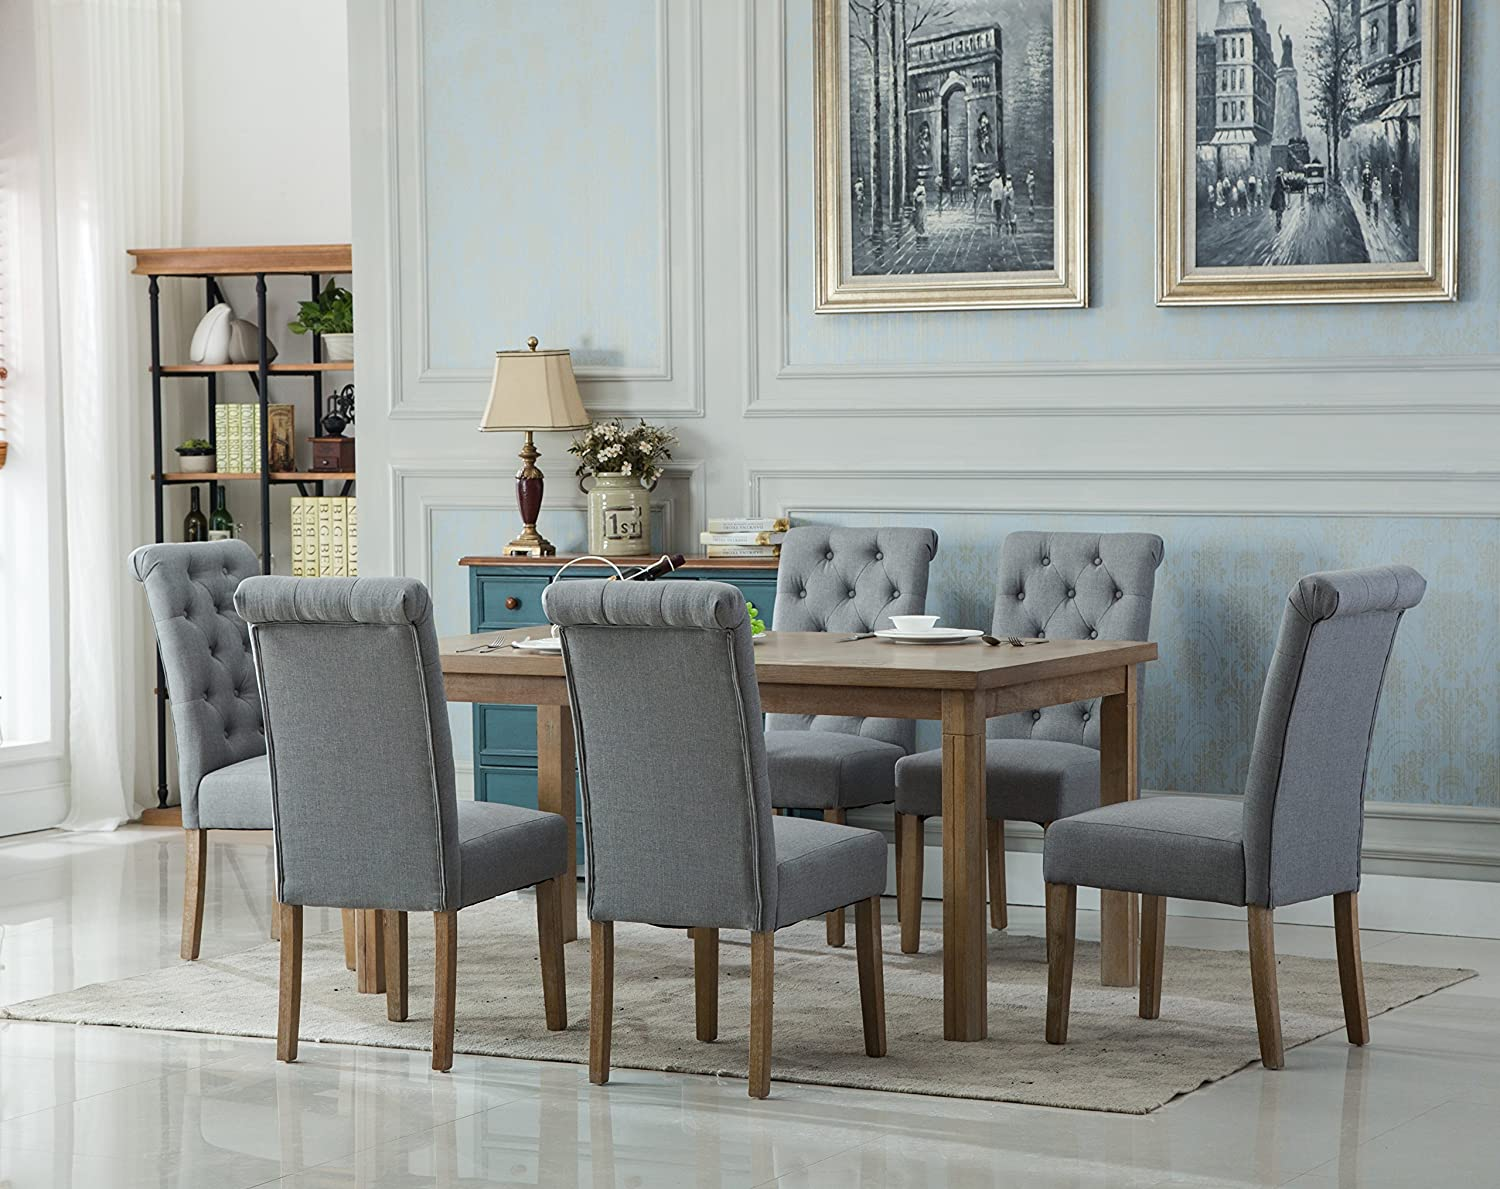 Roundhill Furniture Collection Monotanian Solid Wood Dining Table with 6 Button Tufted Chairs, Gray,